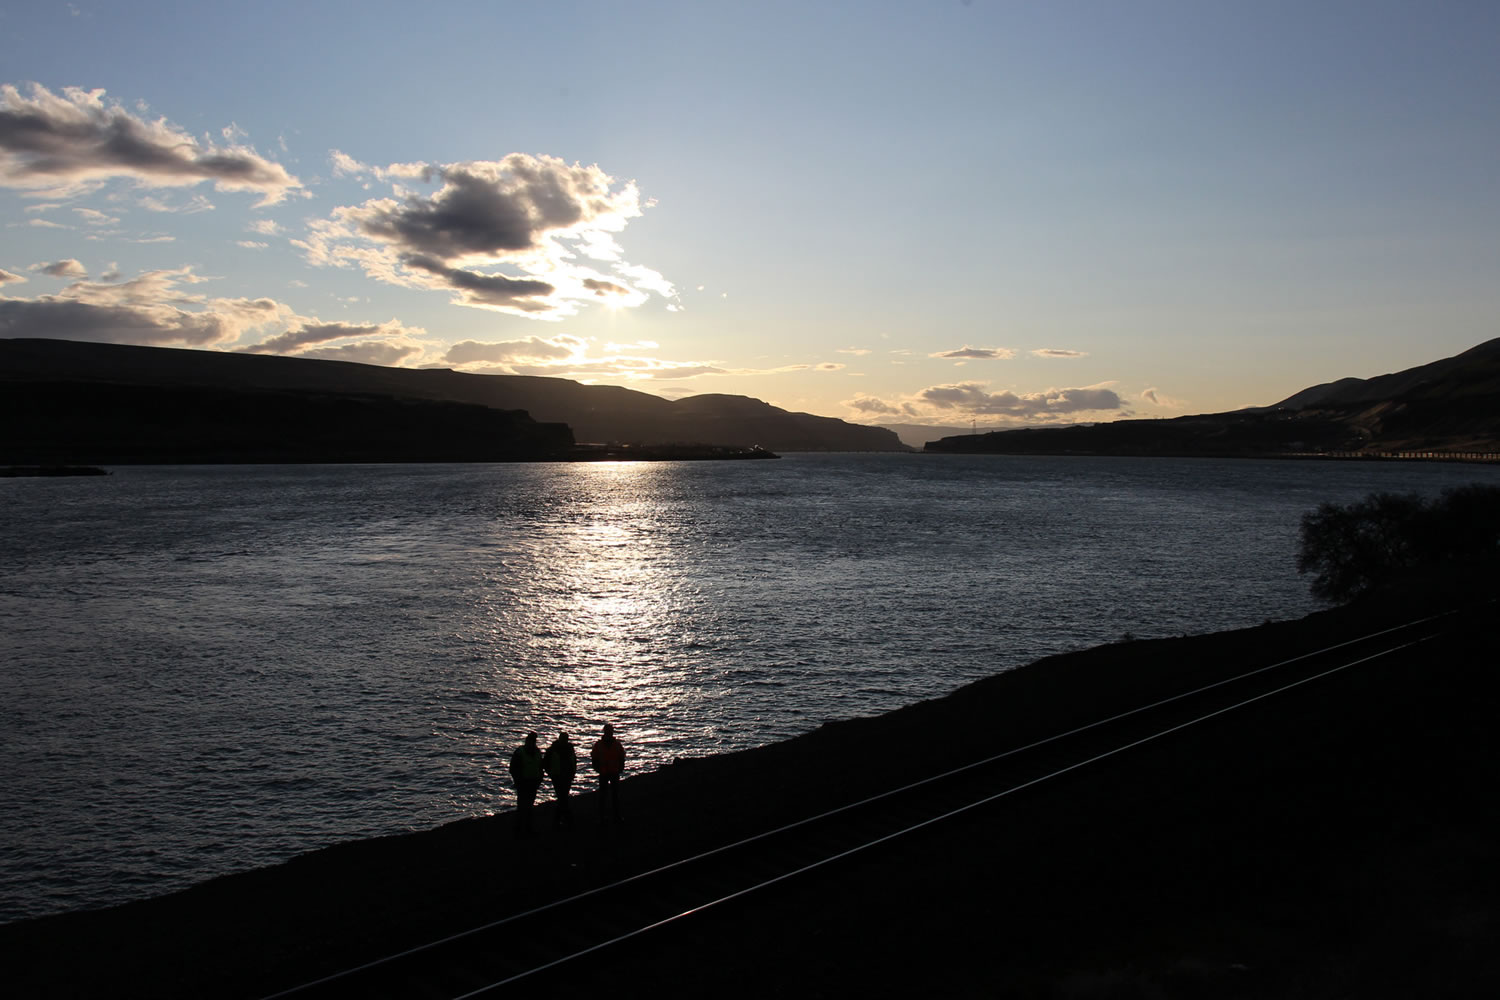 """The Columbia River Gorge: """"We didn't know areas like this existed in America,"""" visitors from the East told BNSF Railway spokesman Gus Melonas."""